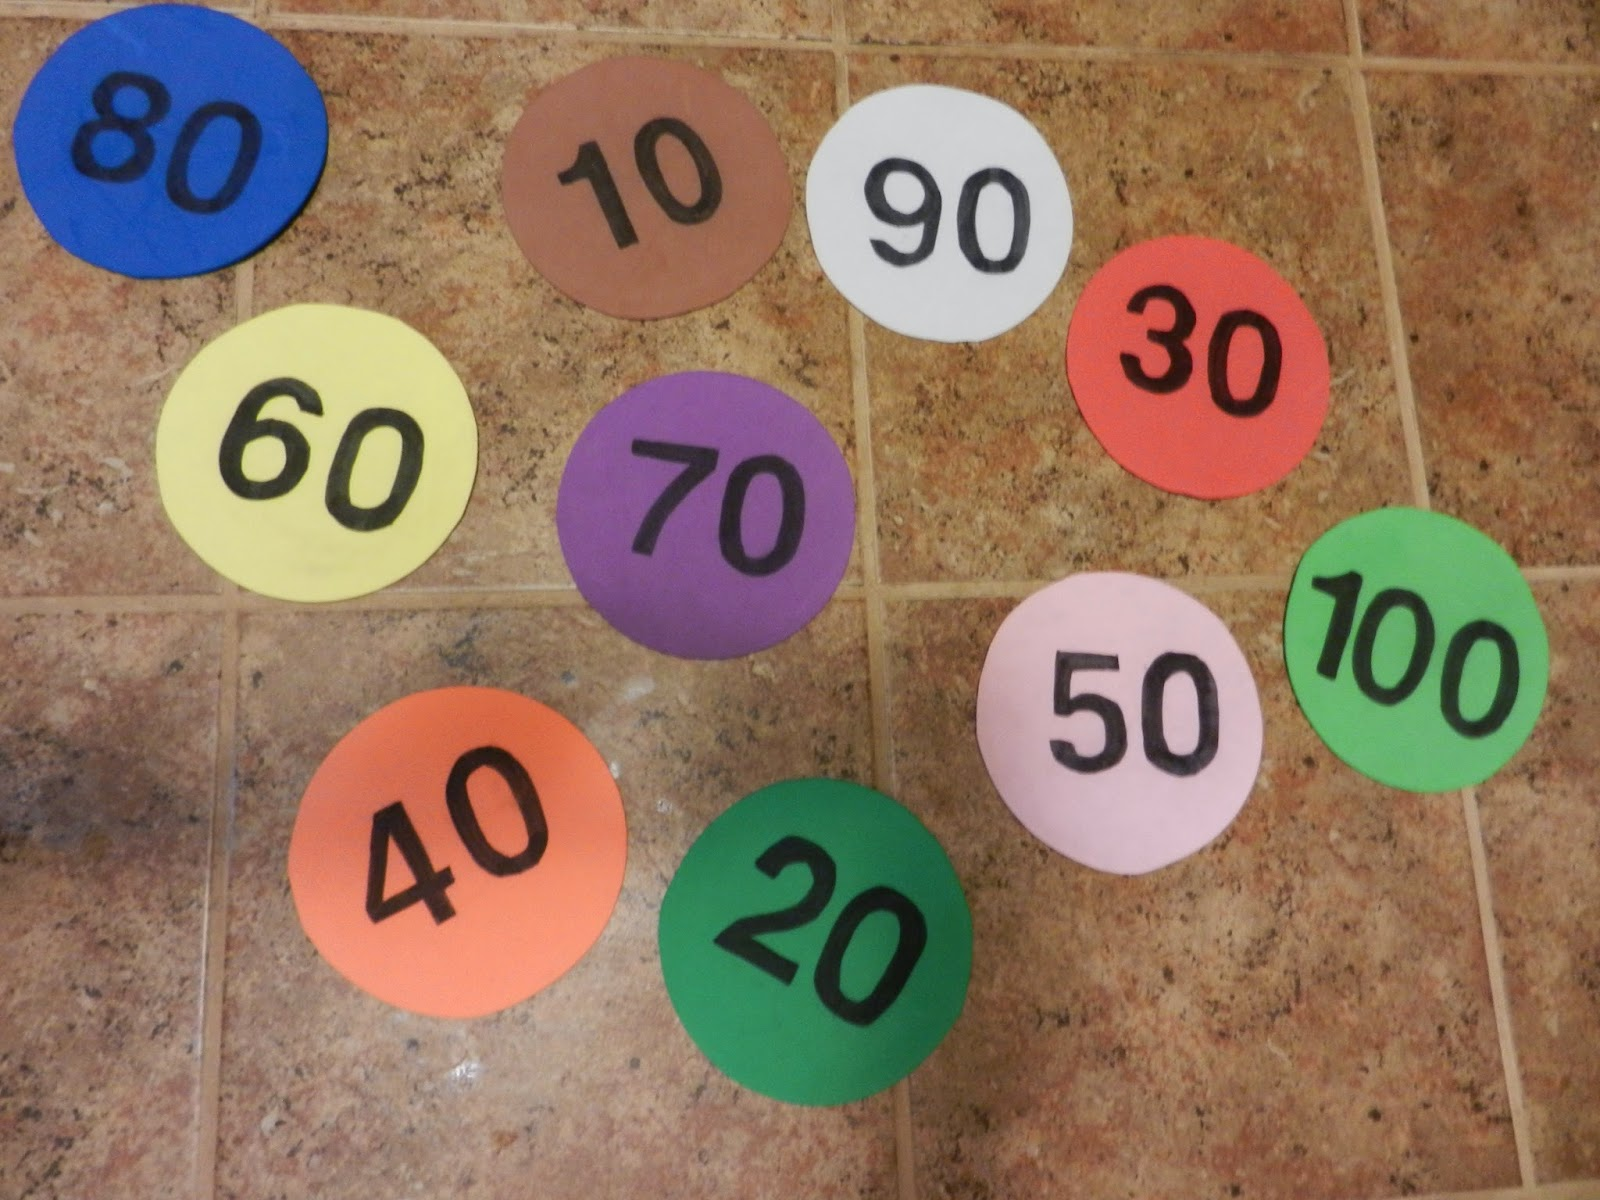 Floor mats in spanish - For This Activity Have Students Sit In A Circle Place The Mats On The Floor In The Middle Of The Circle With The Number Faced Down